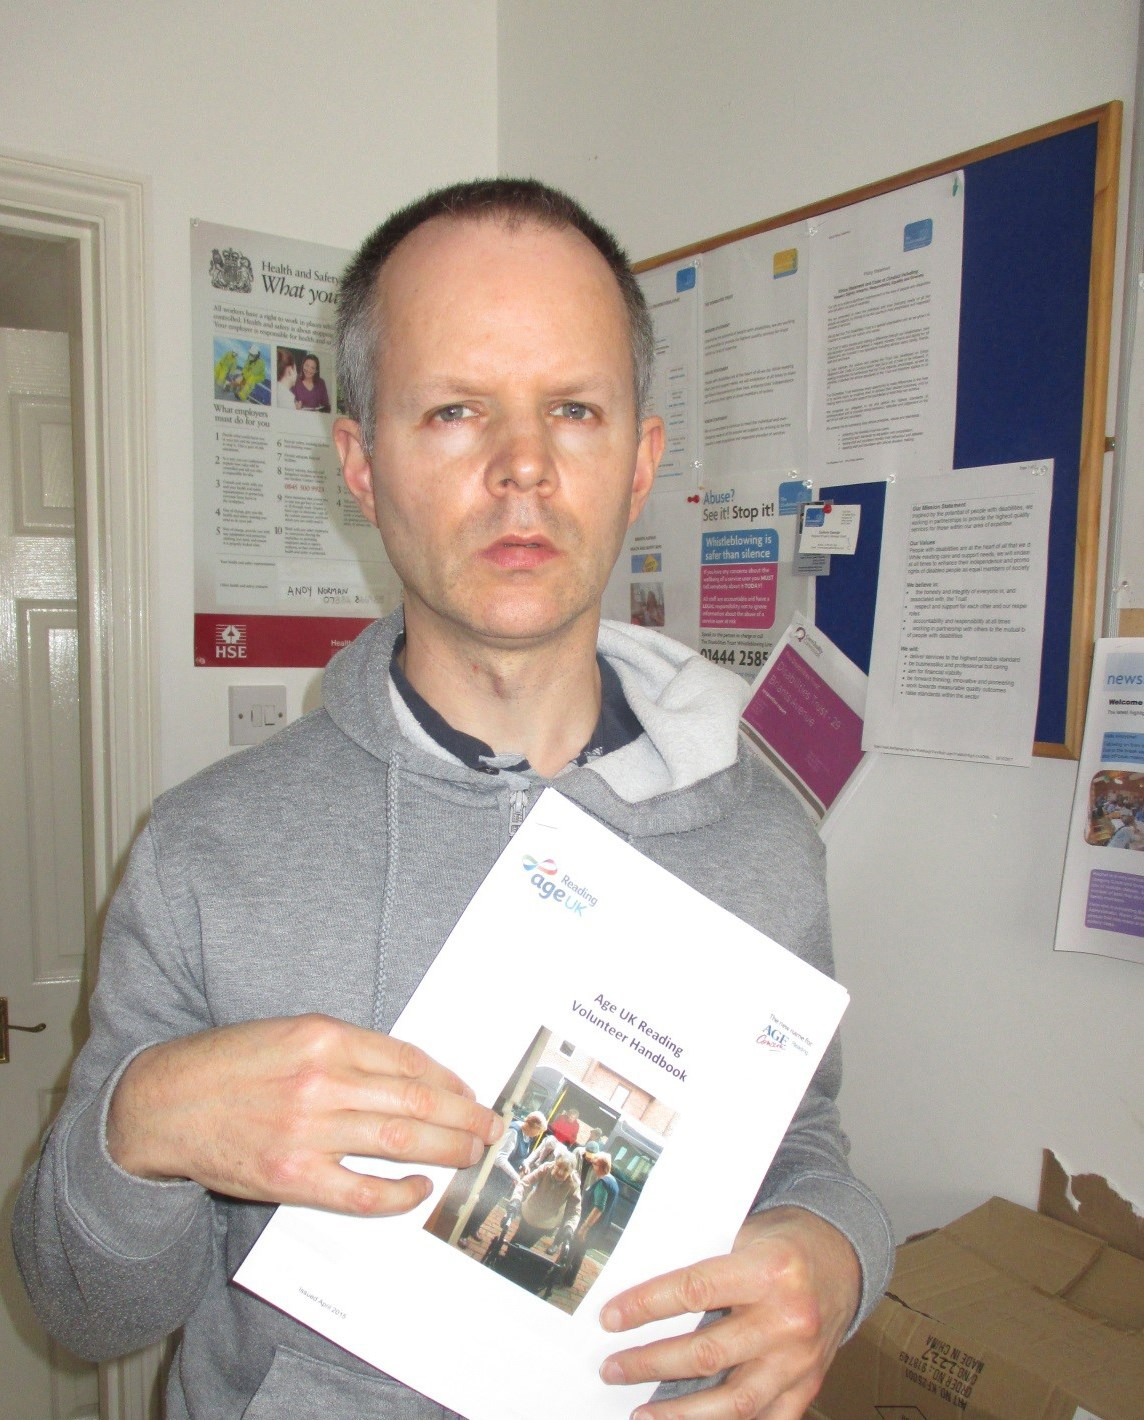 Mark proudly displaying his official status as volunteer with Age Concern